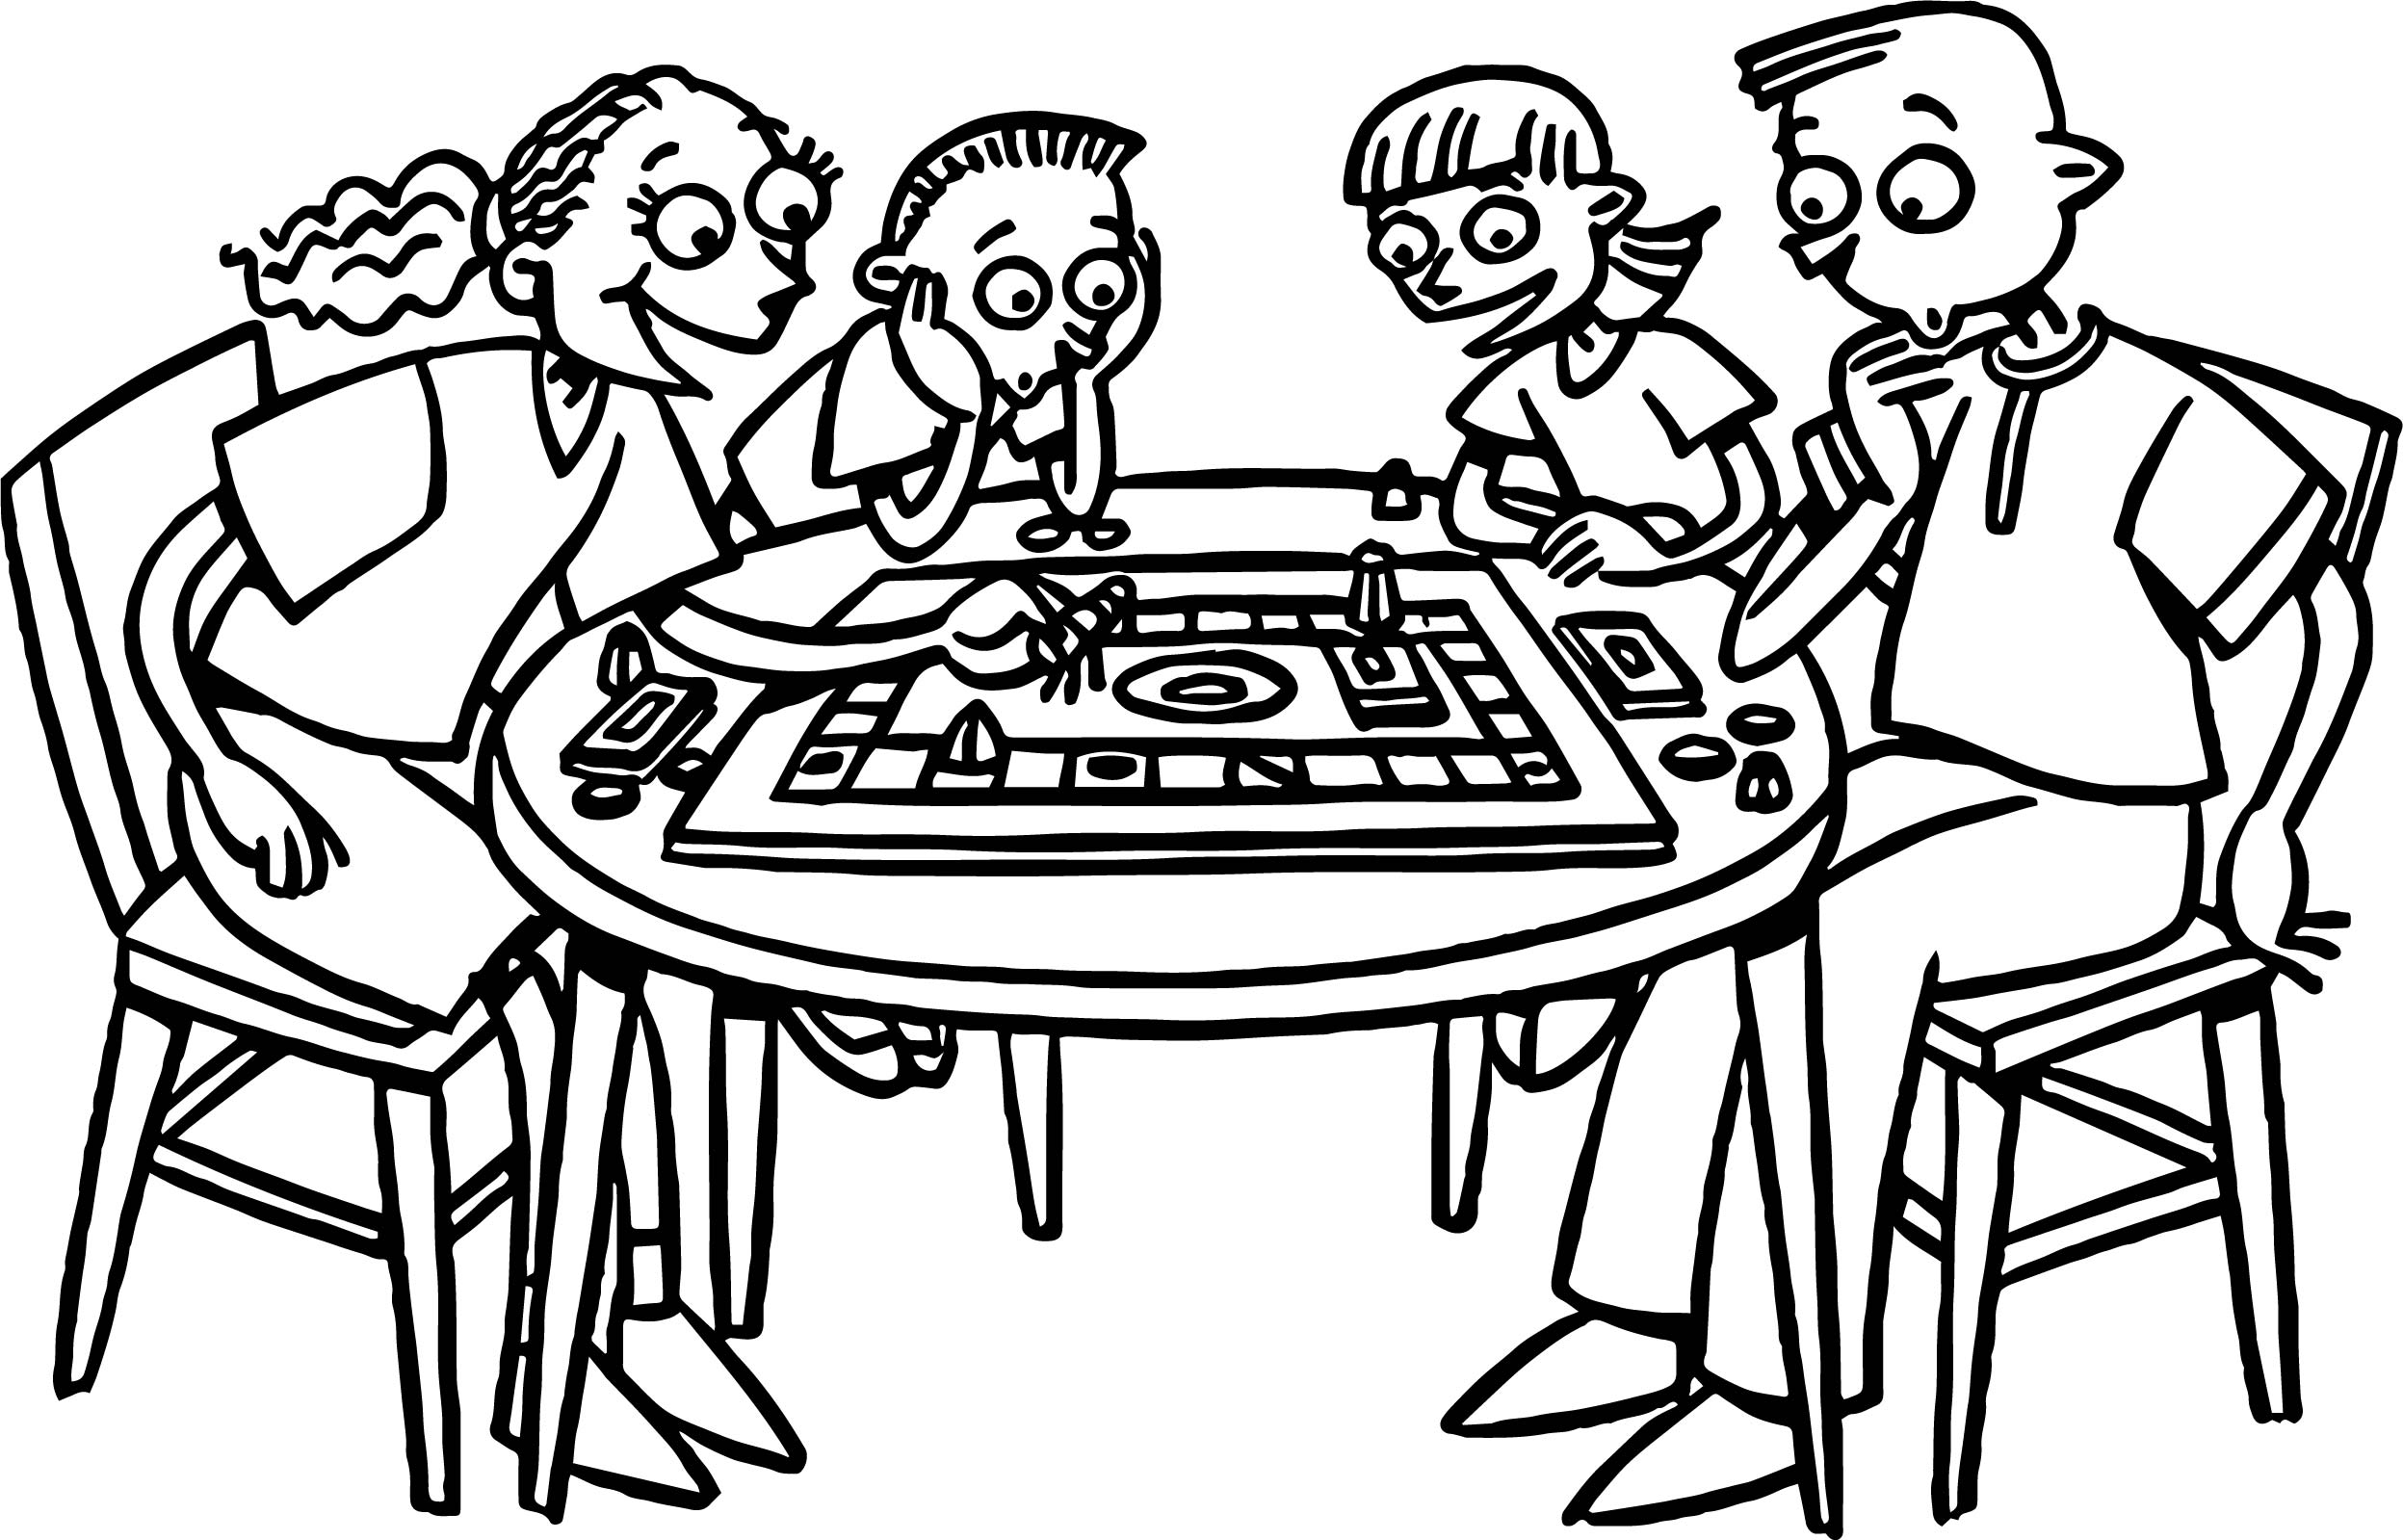 Four Friends Table Board Coloring Page